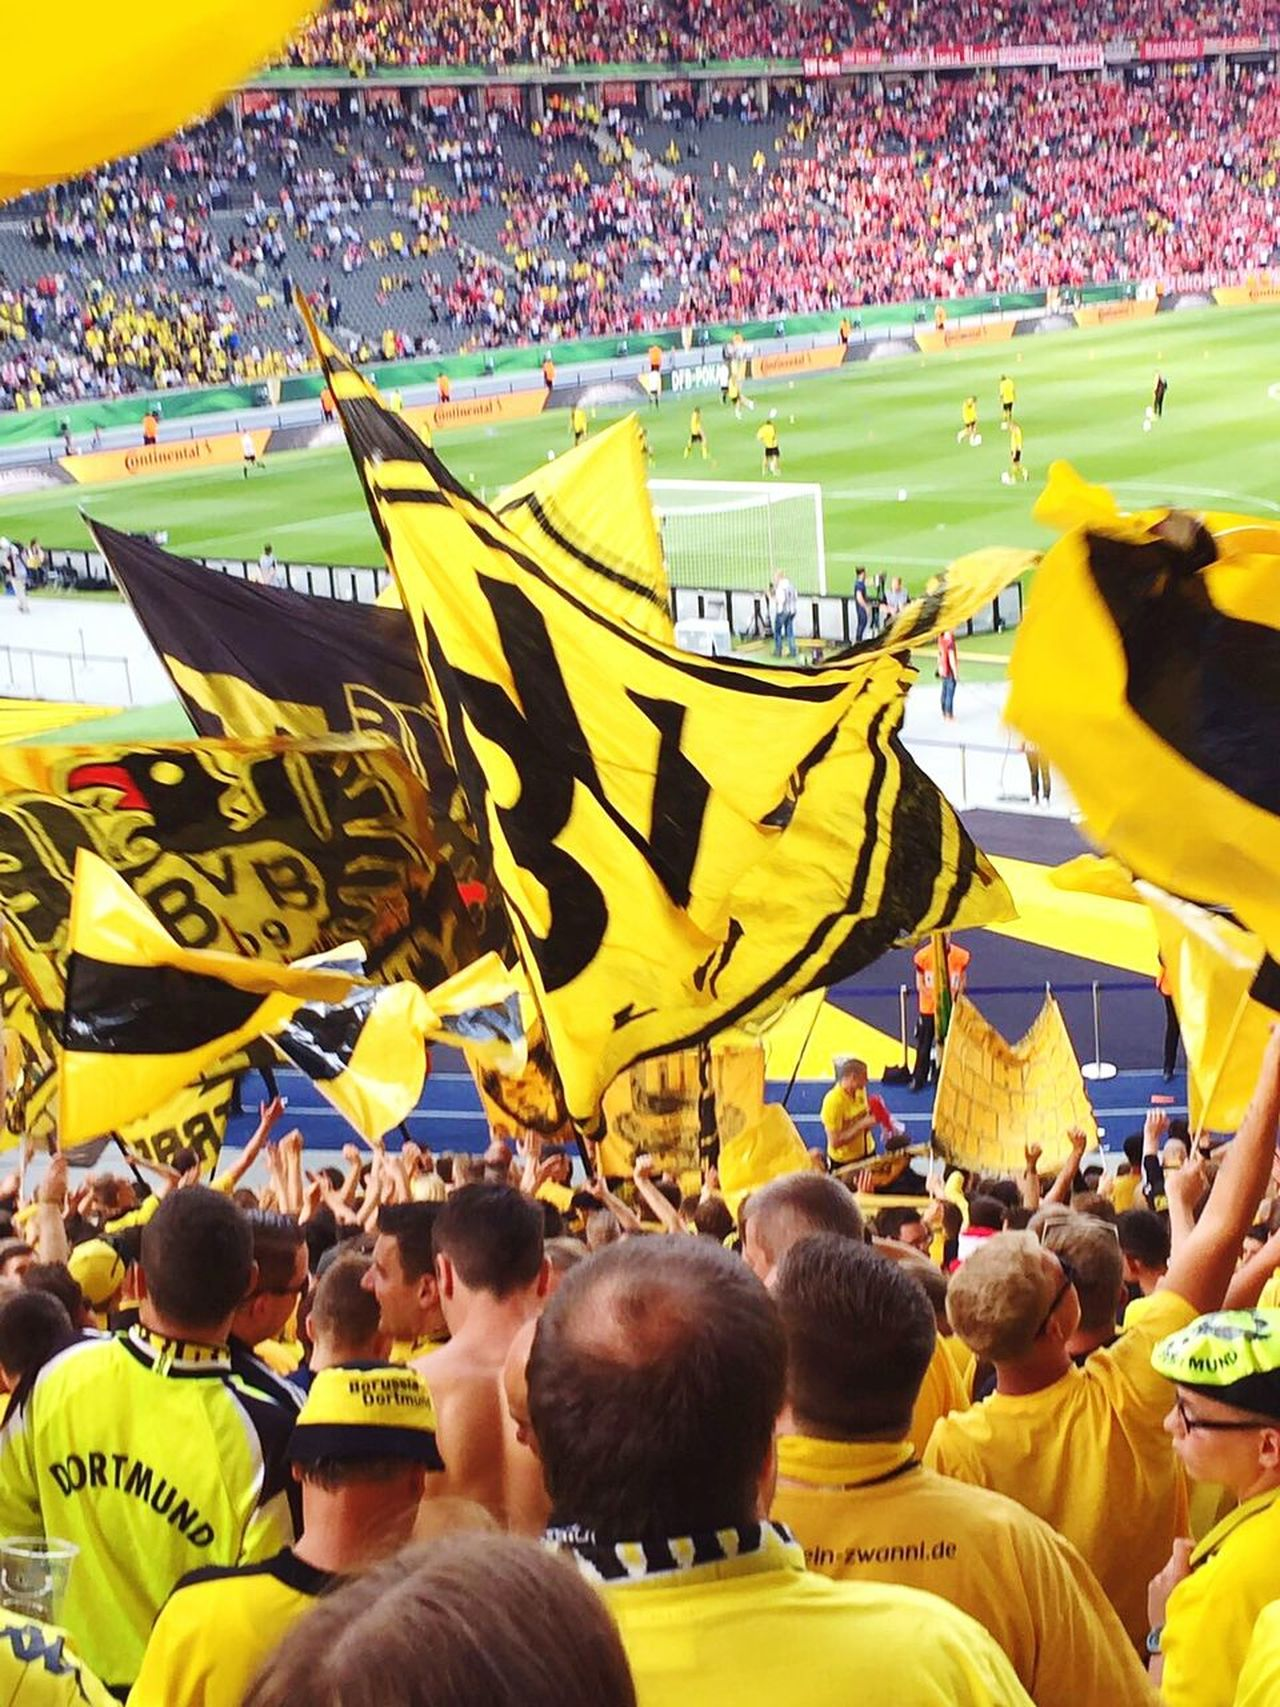 Crowd Large Group Of People Stadium Outdoors People Adults Only Adult Day Pyrotechnics Togetherness Stadium Stadium Atmosphere Borussia Dortmund Human Body Part Adult Cheering Performance Spectator Fun Fan - Enthusiast Consumerism Large Group Of Objects Arrangement